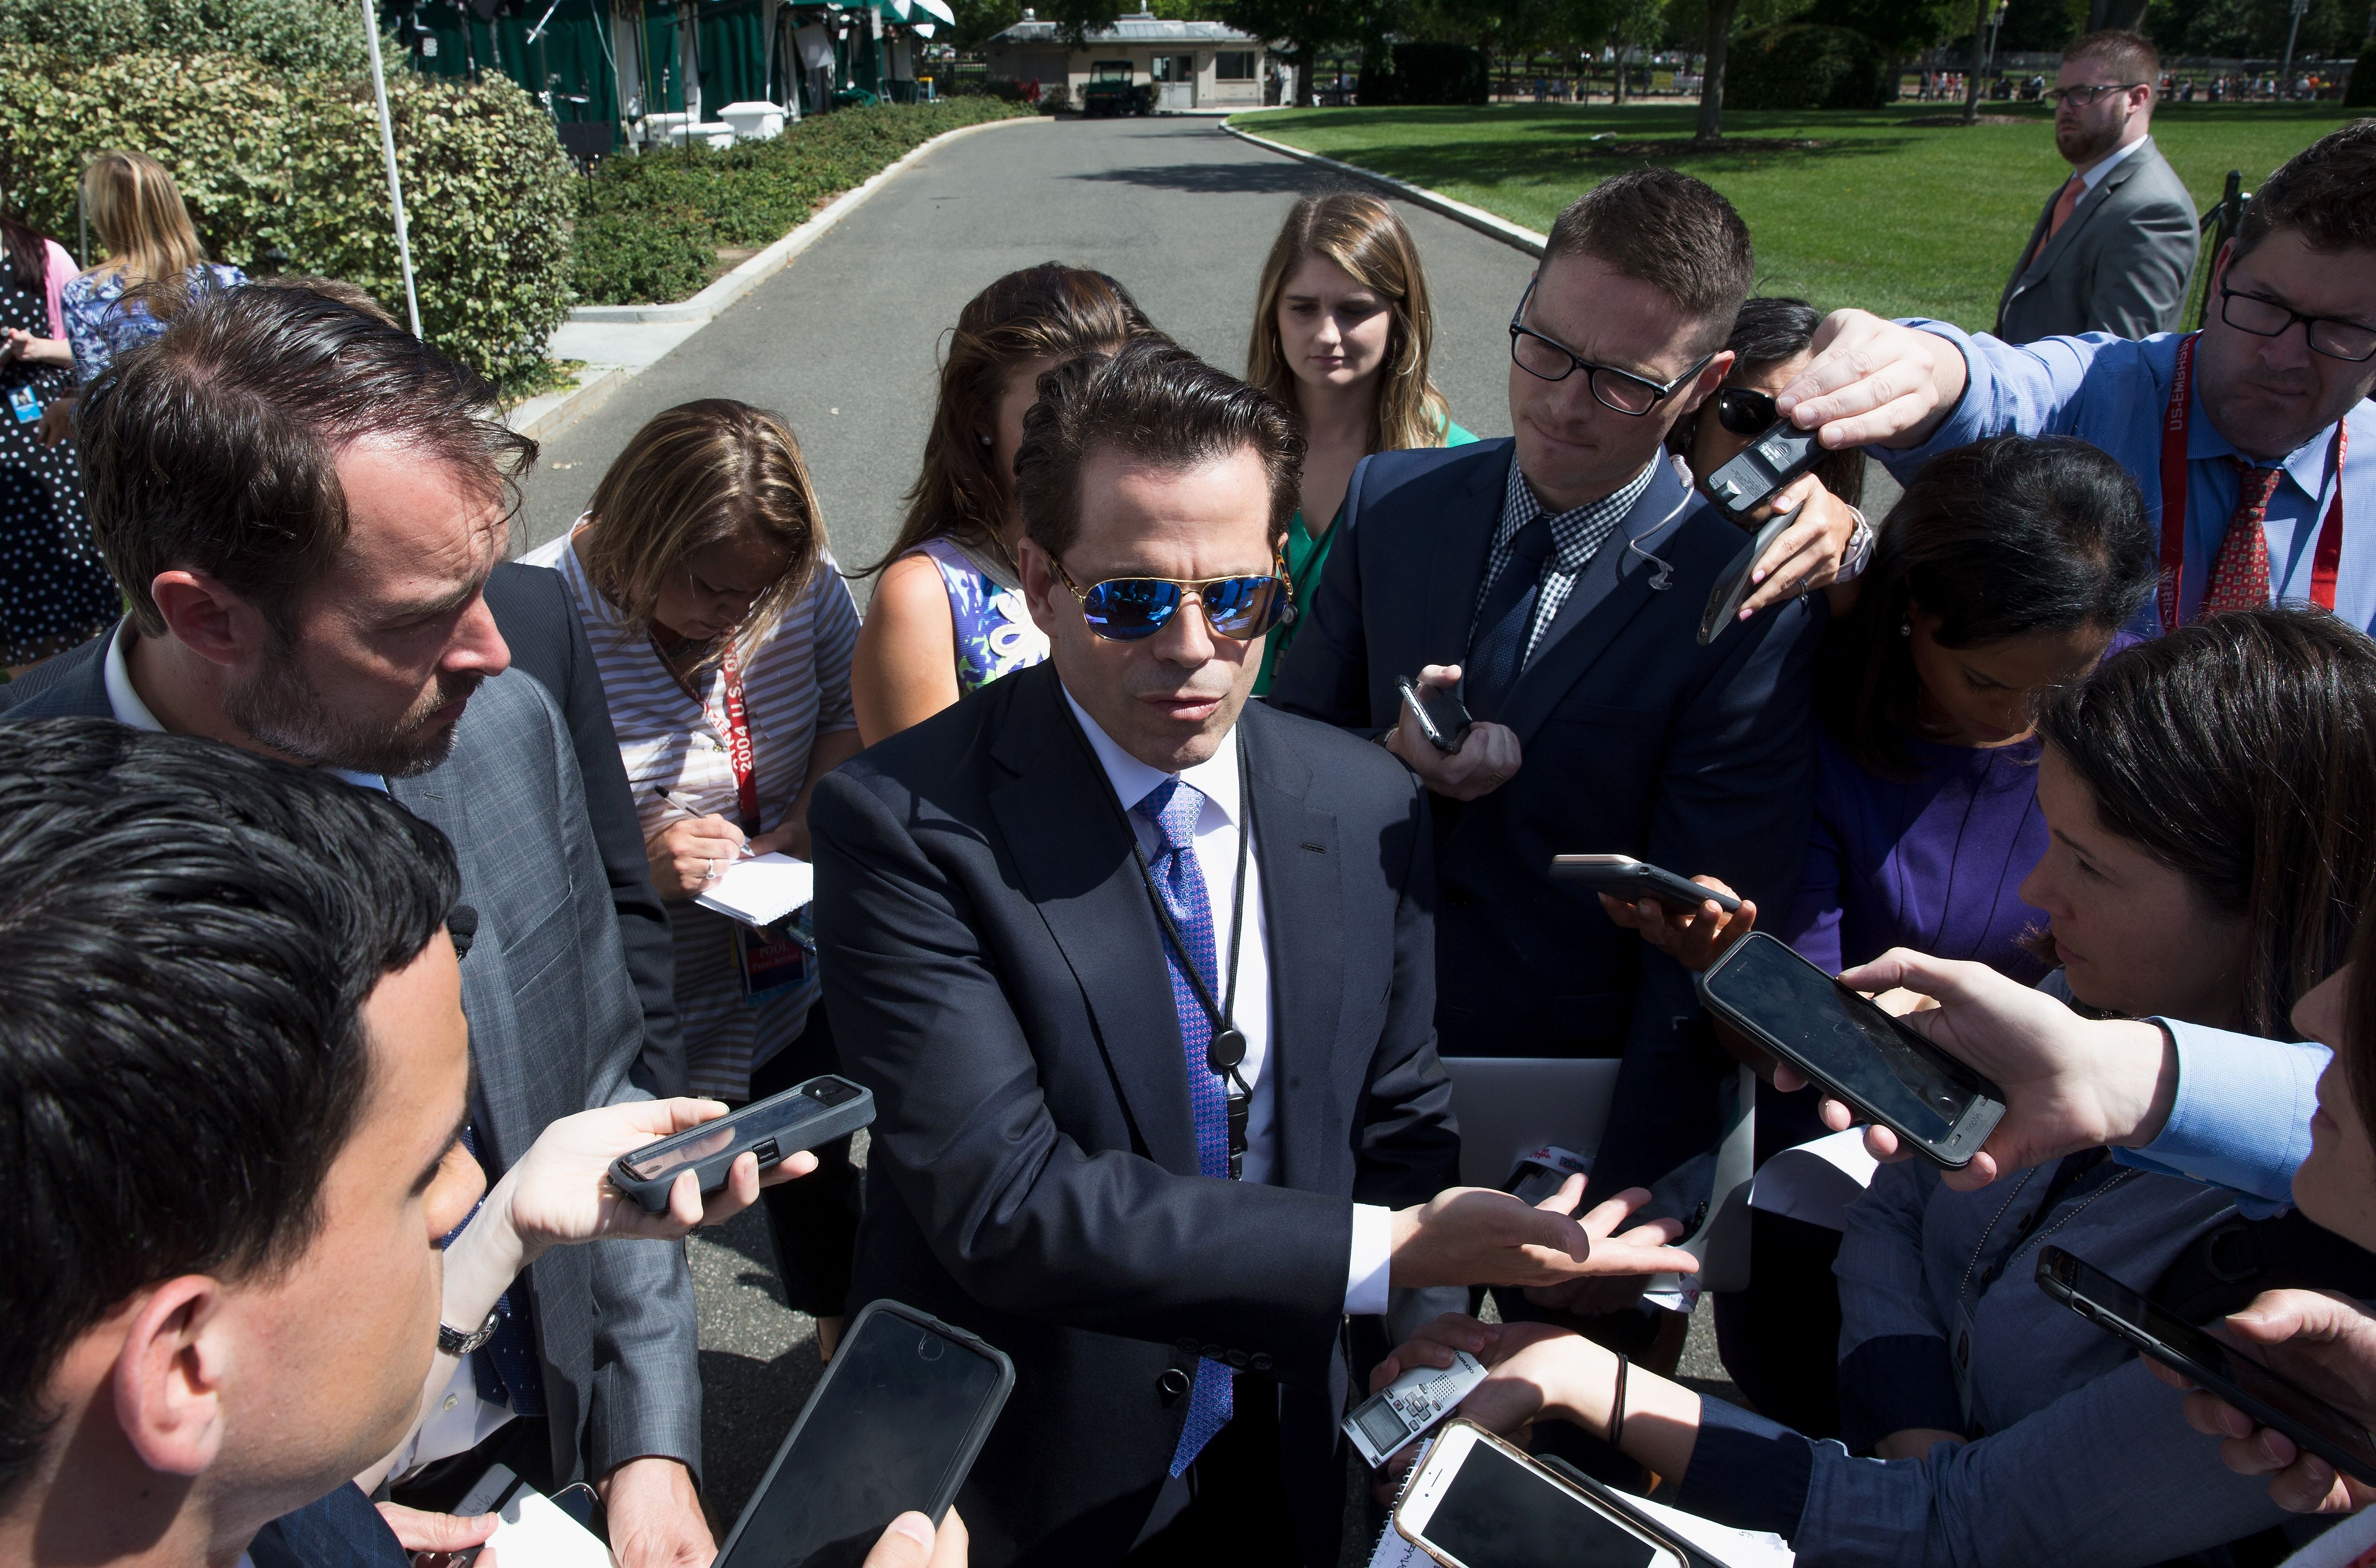 White House Communications Director Anthony Scaramucci talks with the media outside the White House in Washington, DC on July 25, 2017 (TASOS KATOPODIS/AFP/Getty Images)